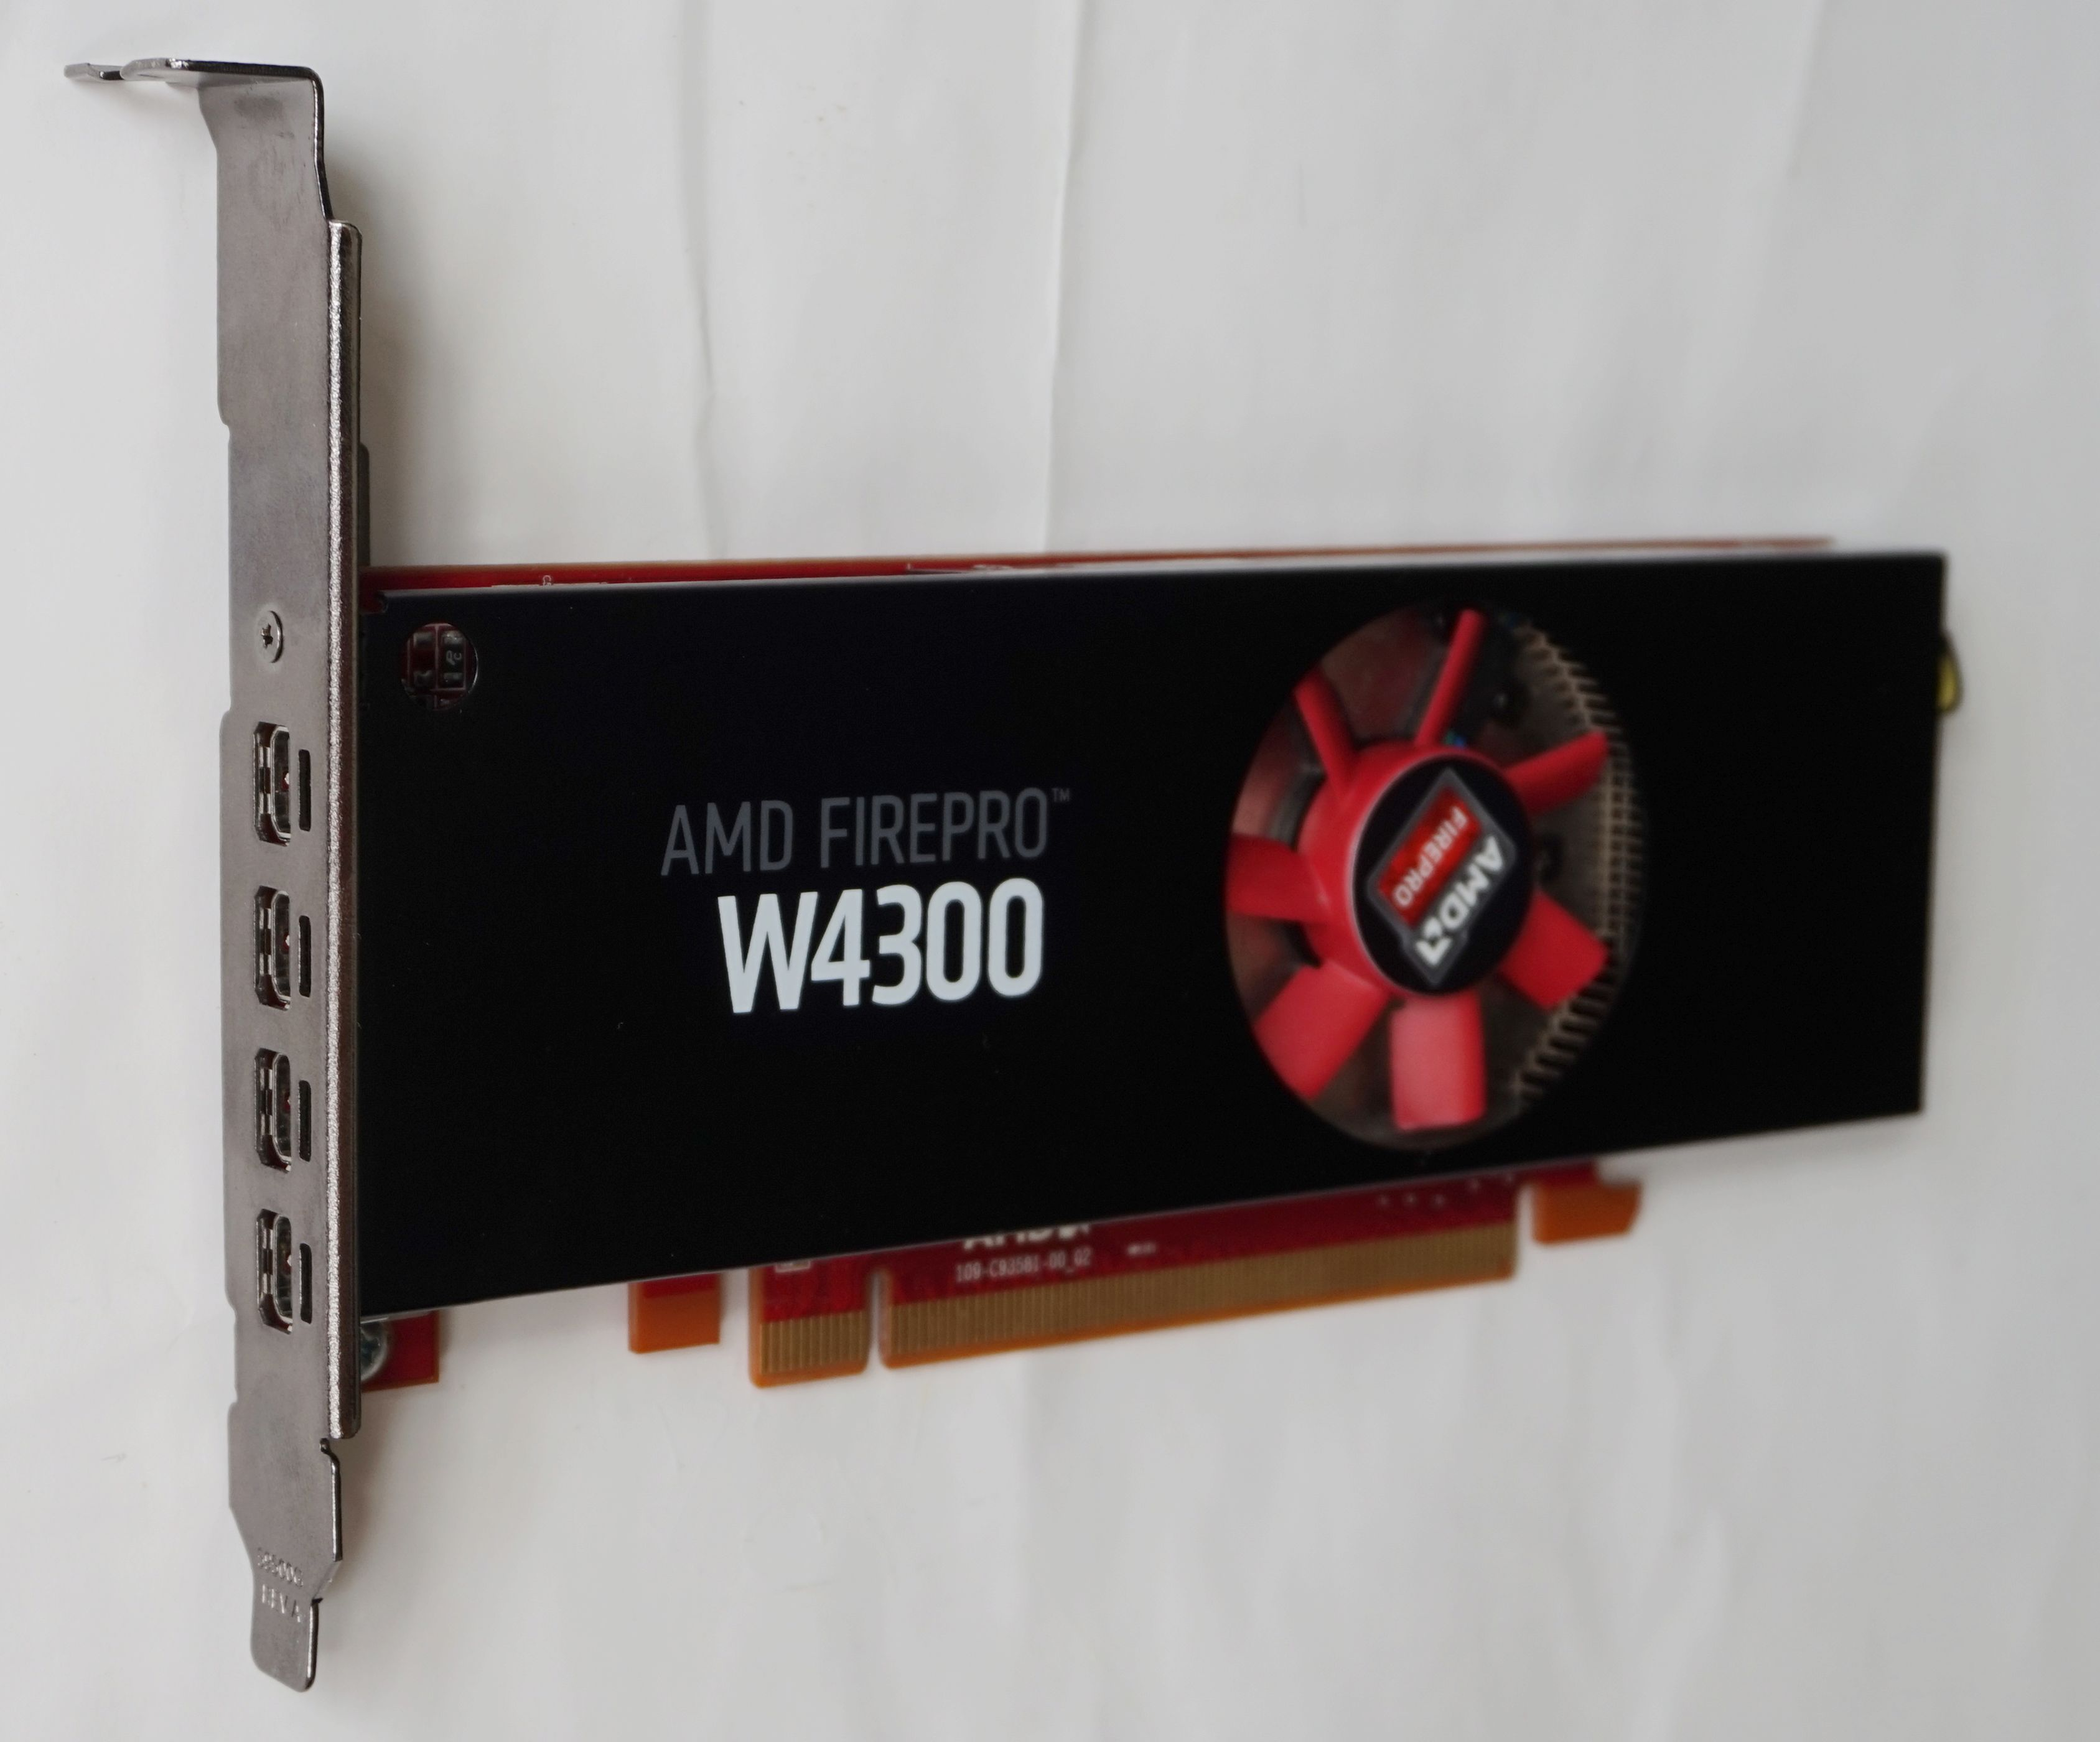 AMD Firepro W4300 4GB Professional Design Graphics Card 3D Rendering 4 Screen Graphics Graphics Card